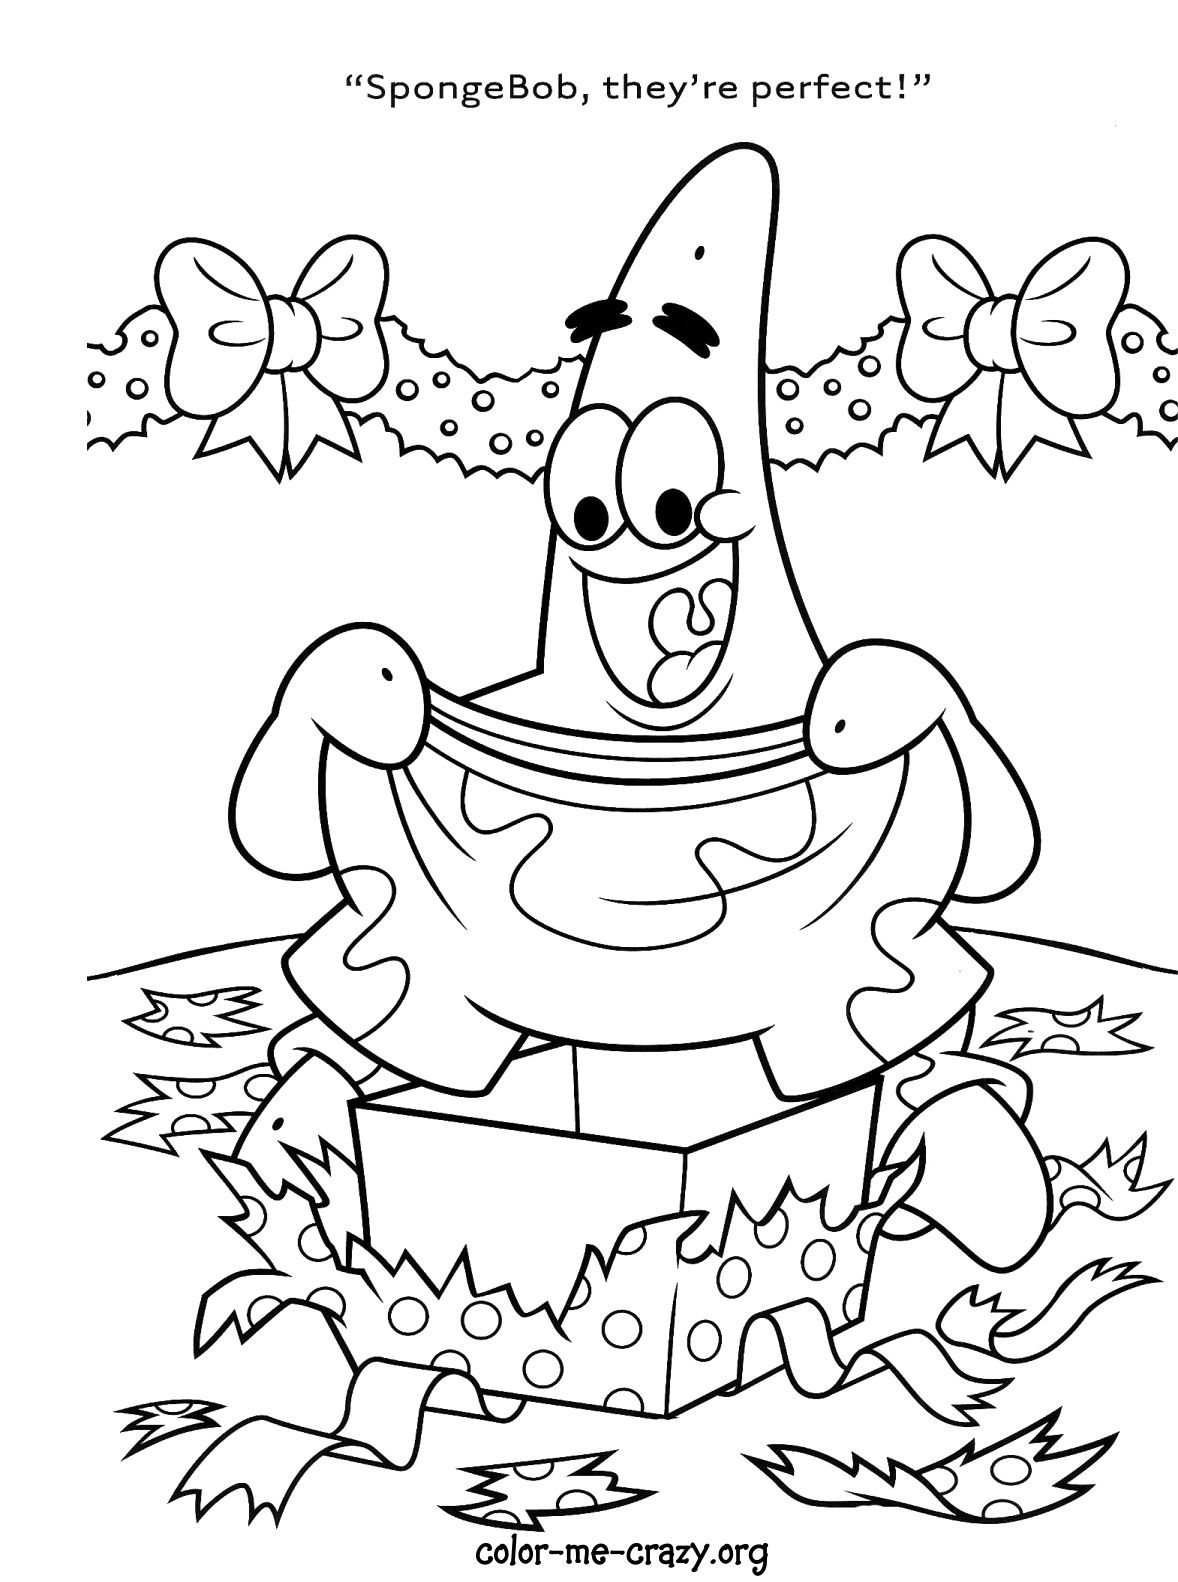 Holiday Coloring Pages For Kids  Spongebob Christmas Printable Coloring Pages – Happy Holidays